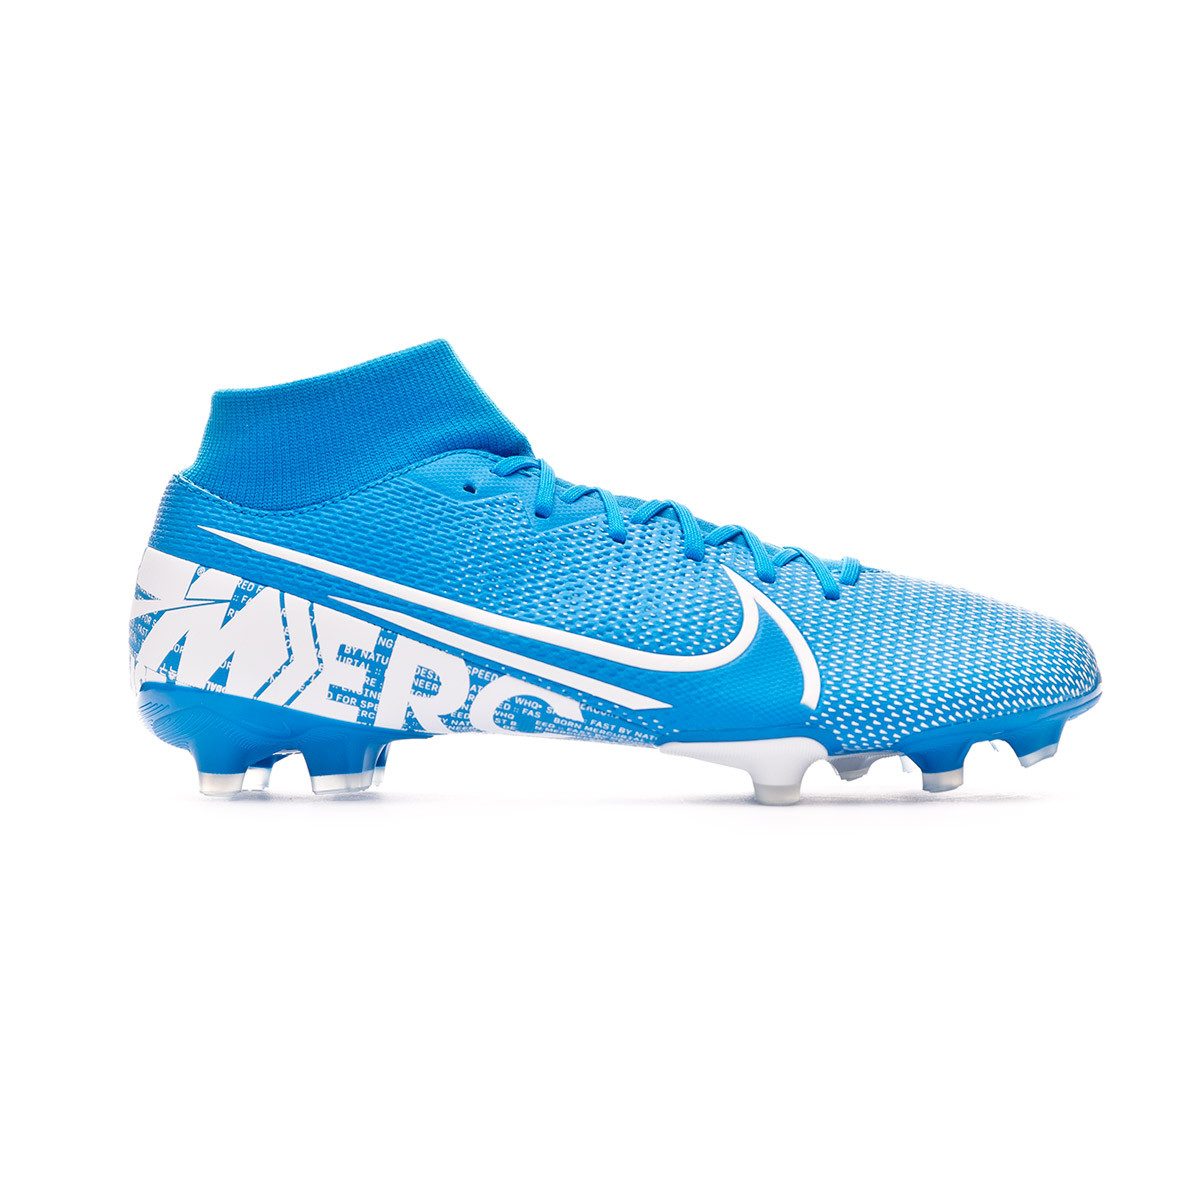 meilleure sélection 0189f a03b3 Bota Mercurial Superfly VII Academy FG/MG Blue hero-White-Obsidian